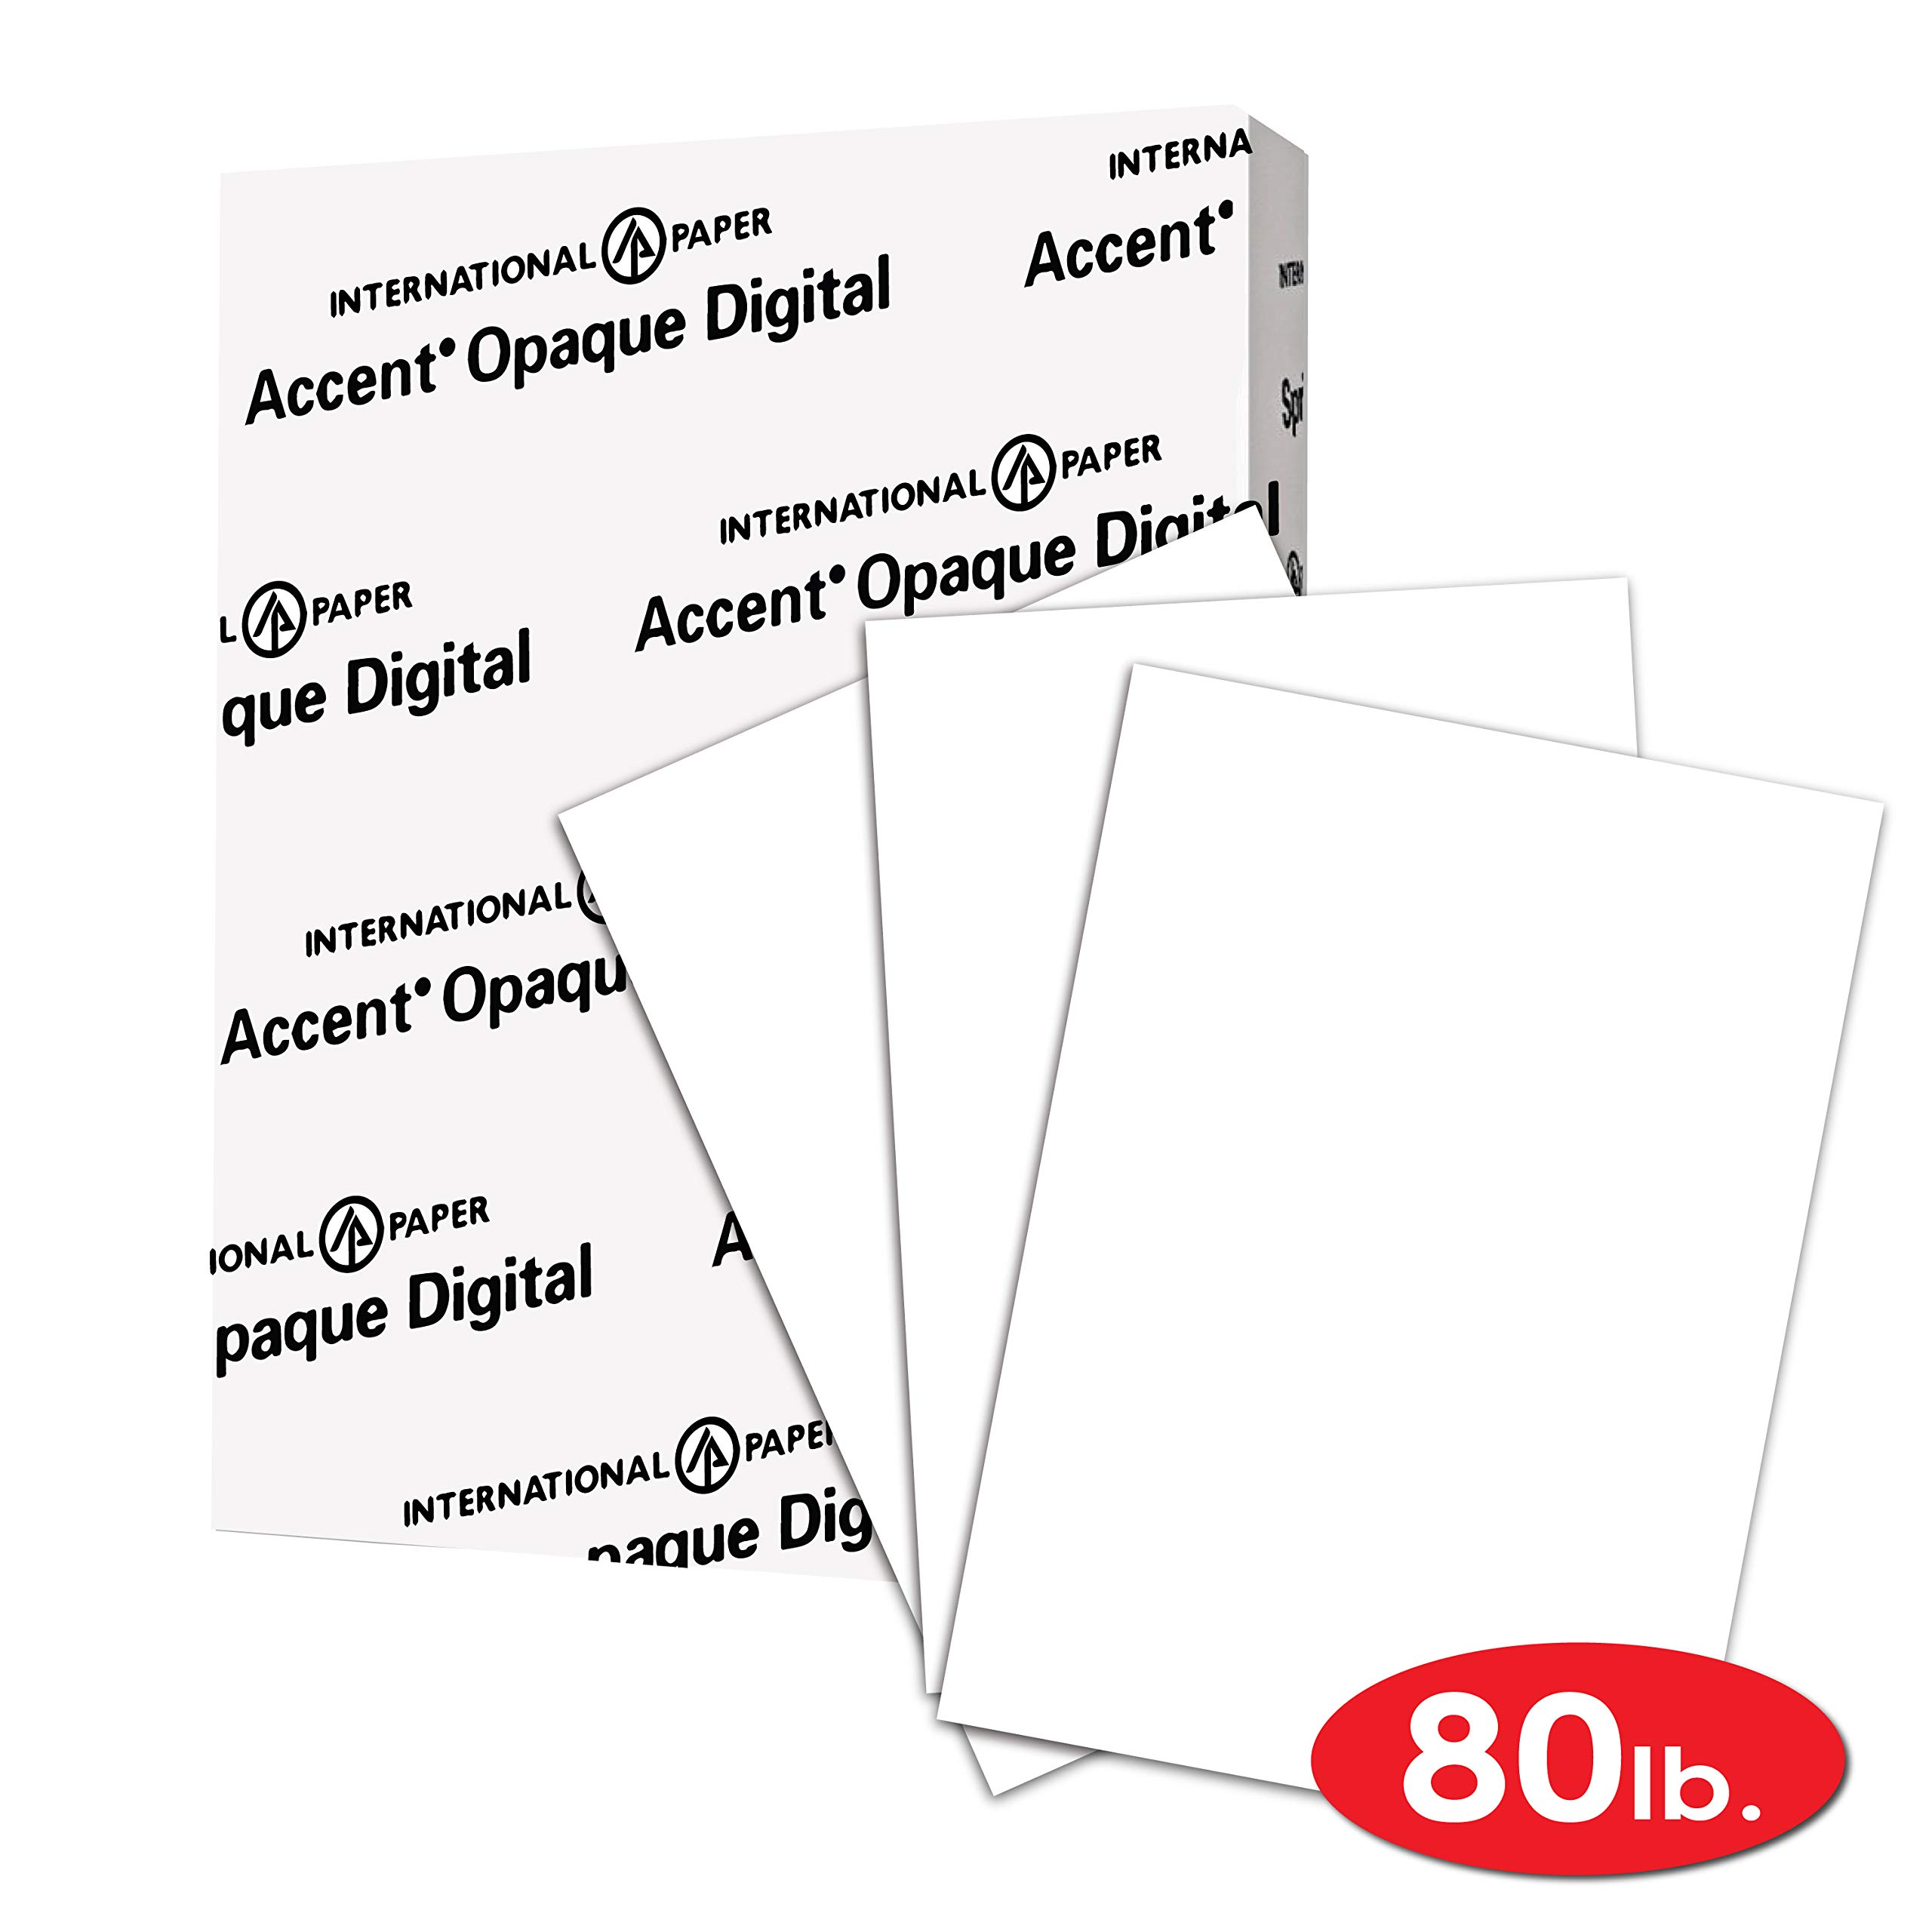 Accent Opaque Thick Cardstock Paper, White Paper, 80lb Cover, 216 gsm, 8.5 x 11, 97 Bright, 1 Ream / 250 Sheets – Super Smooth, Heavy Card Stock (121947R)